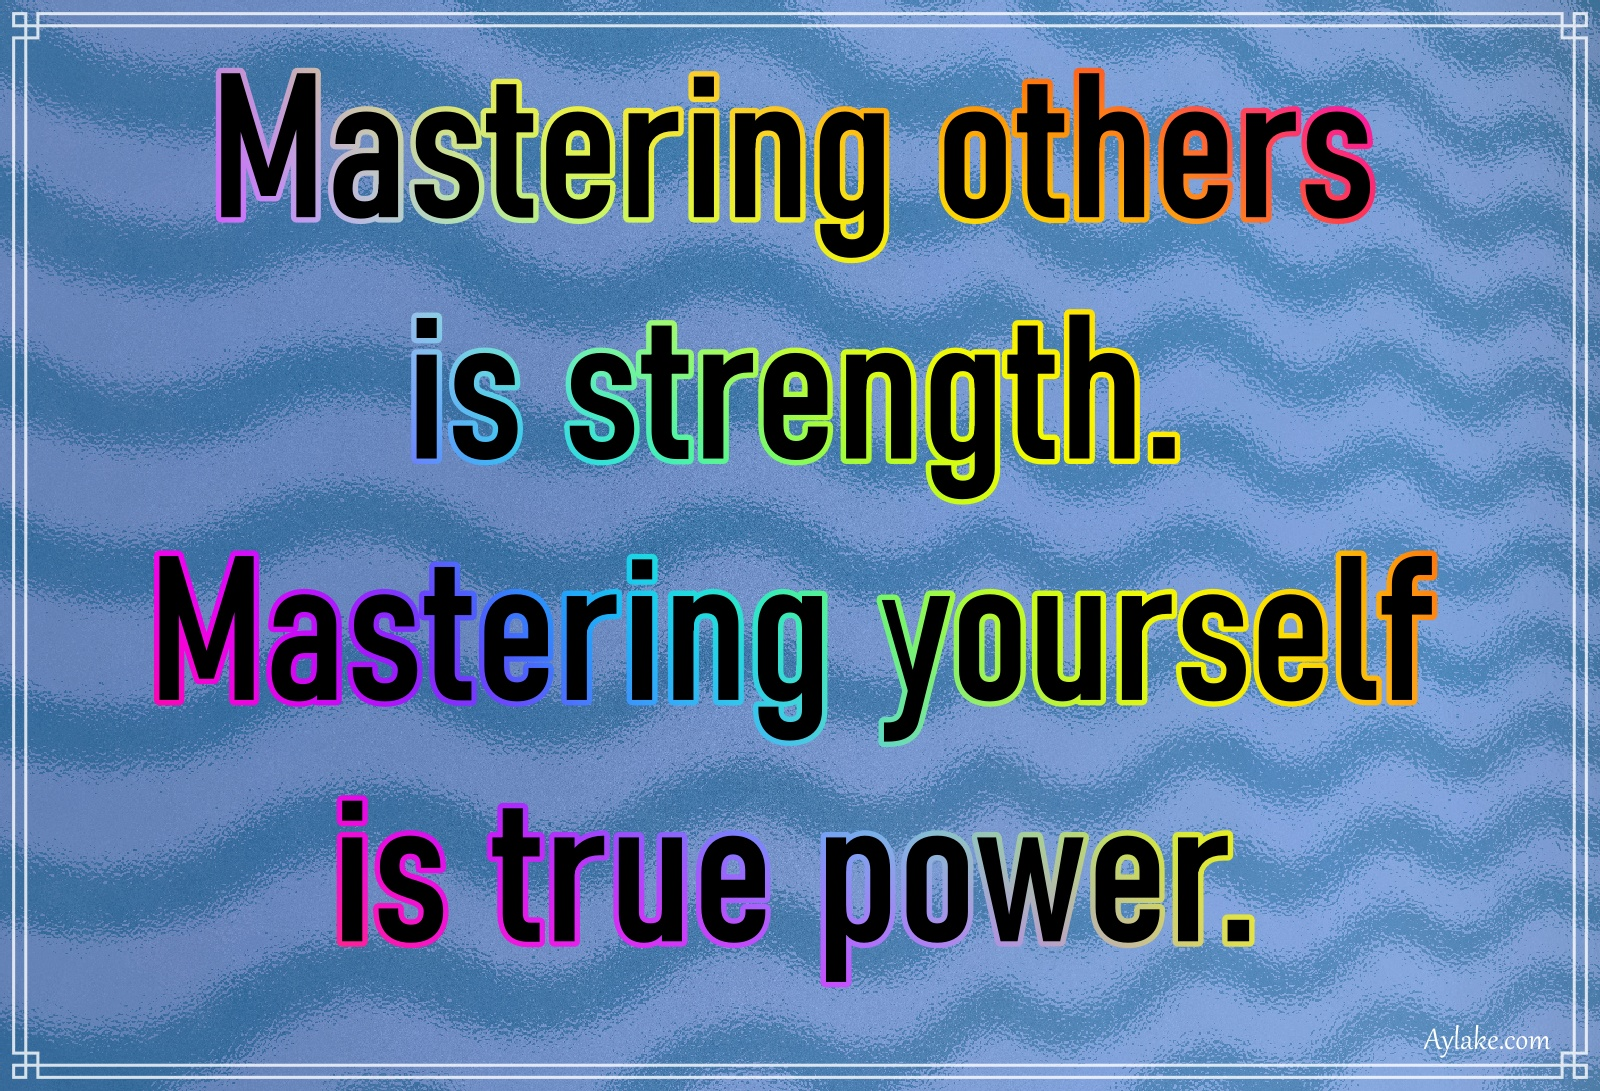 Discipline quotes Mastering others is strength Aylake